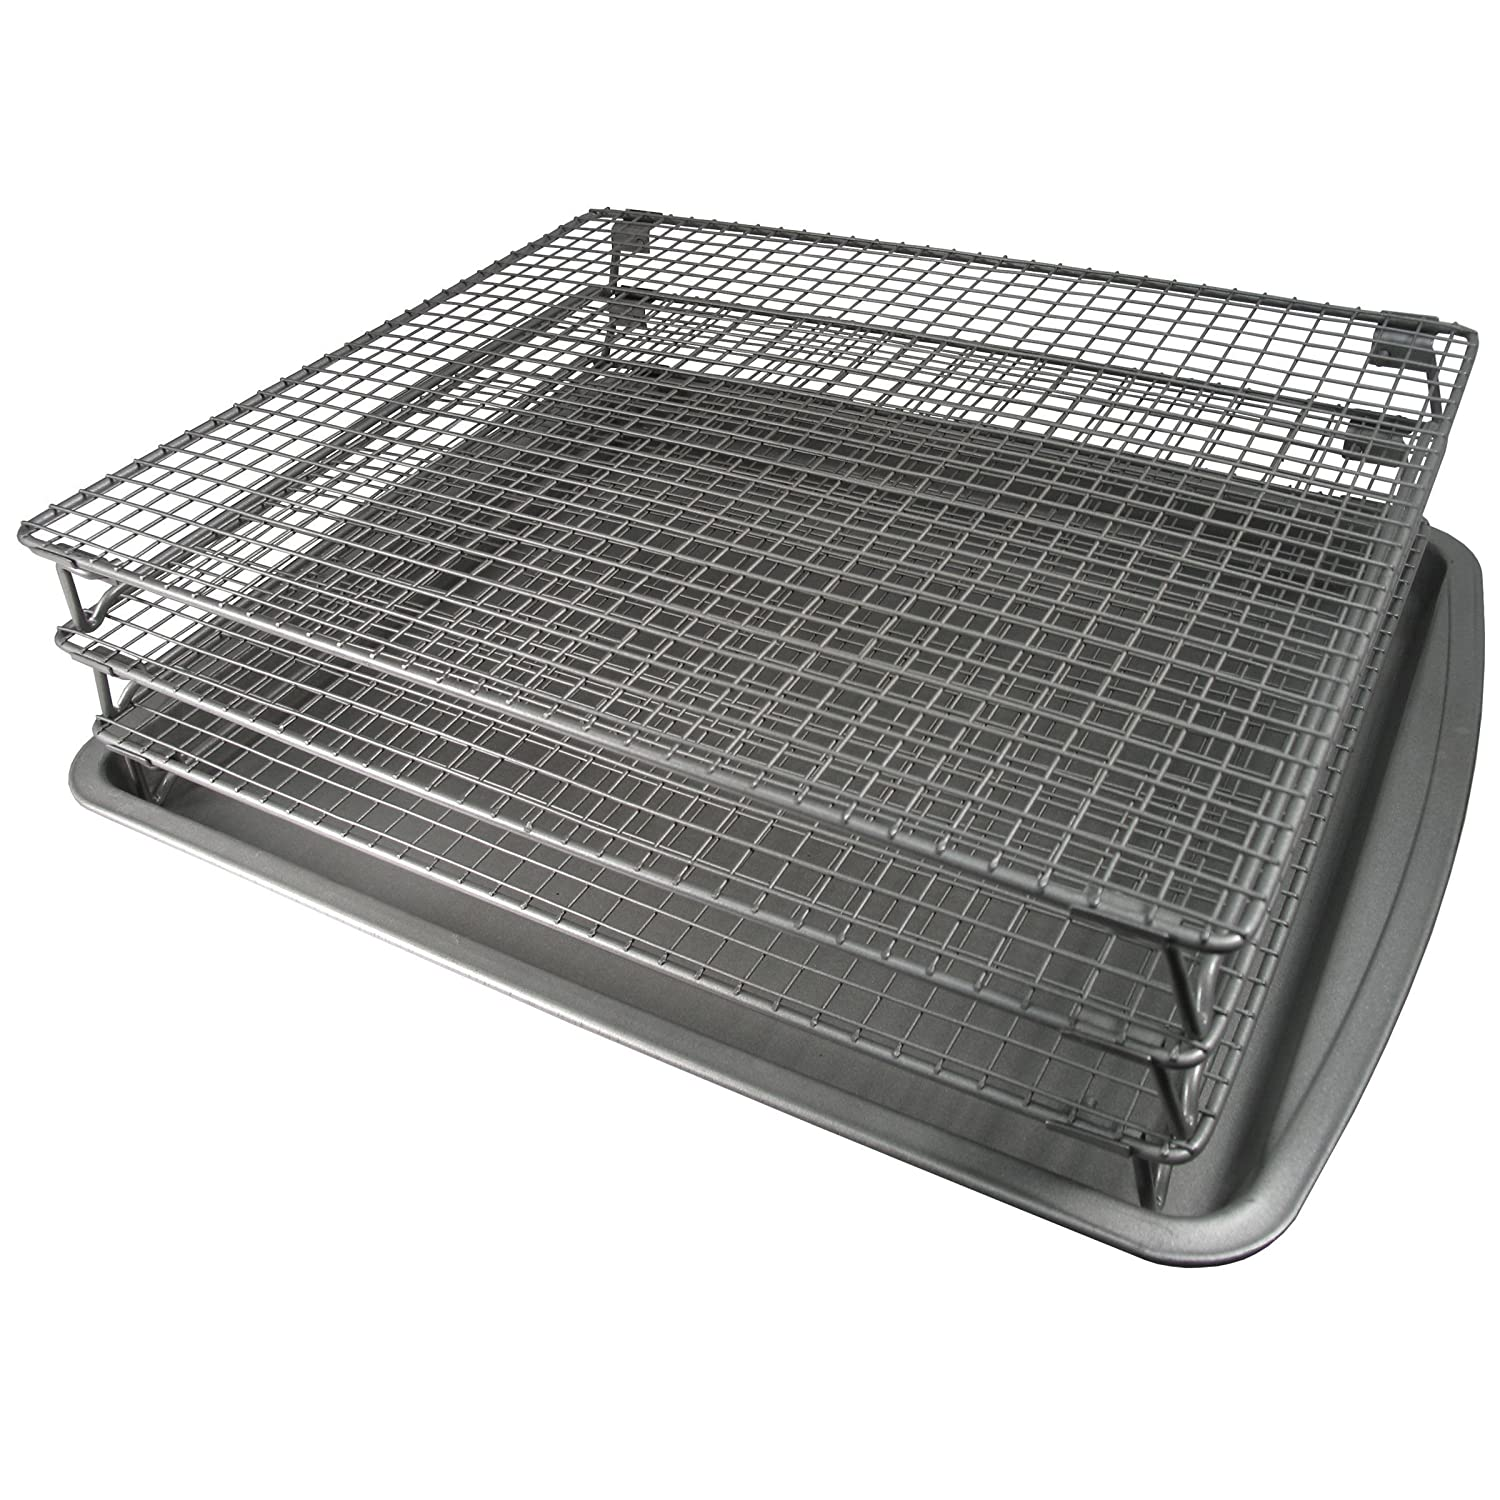 Weston Nonstick 3-Tier Drying Rack and Baking Pan (07-0155-W), 700 Square Inches of Drying Space